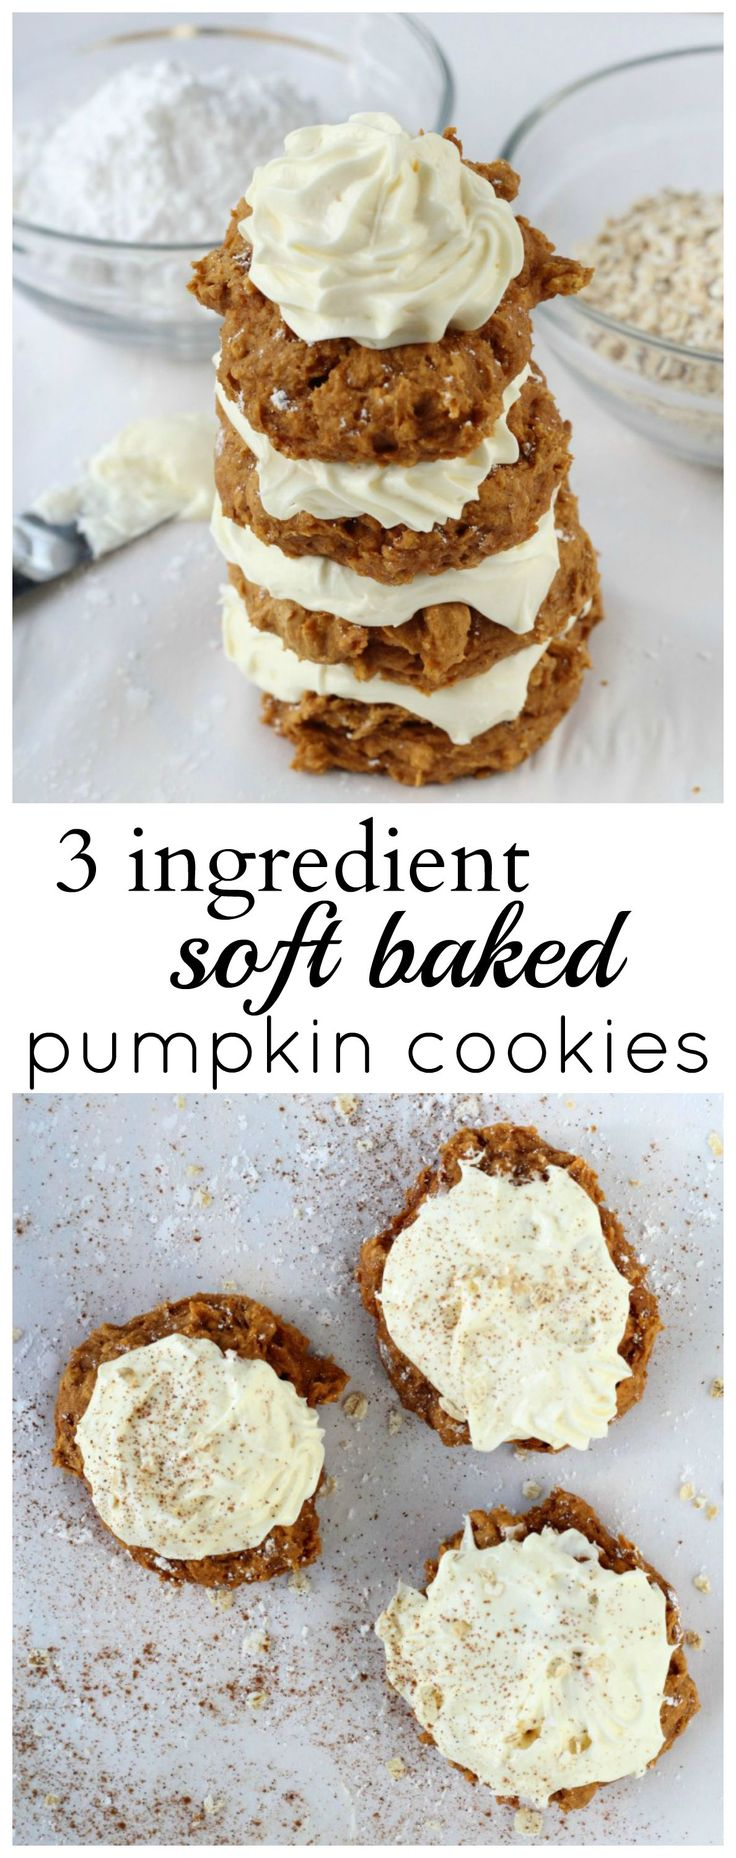 Soft pumpkin cookies made with spice cake mix, pumpkin puree, and oats.